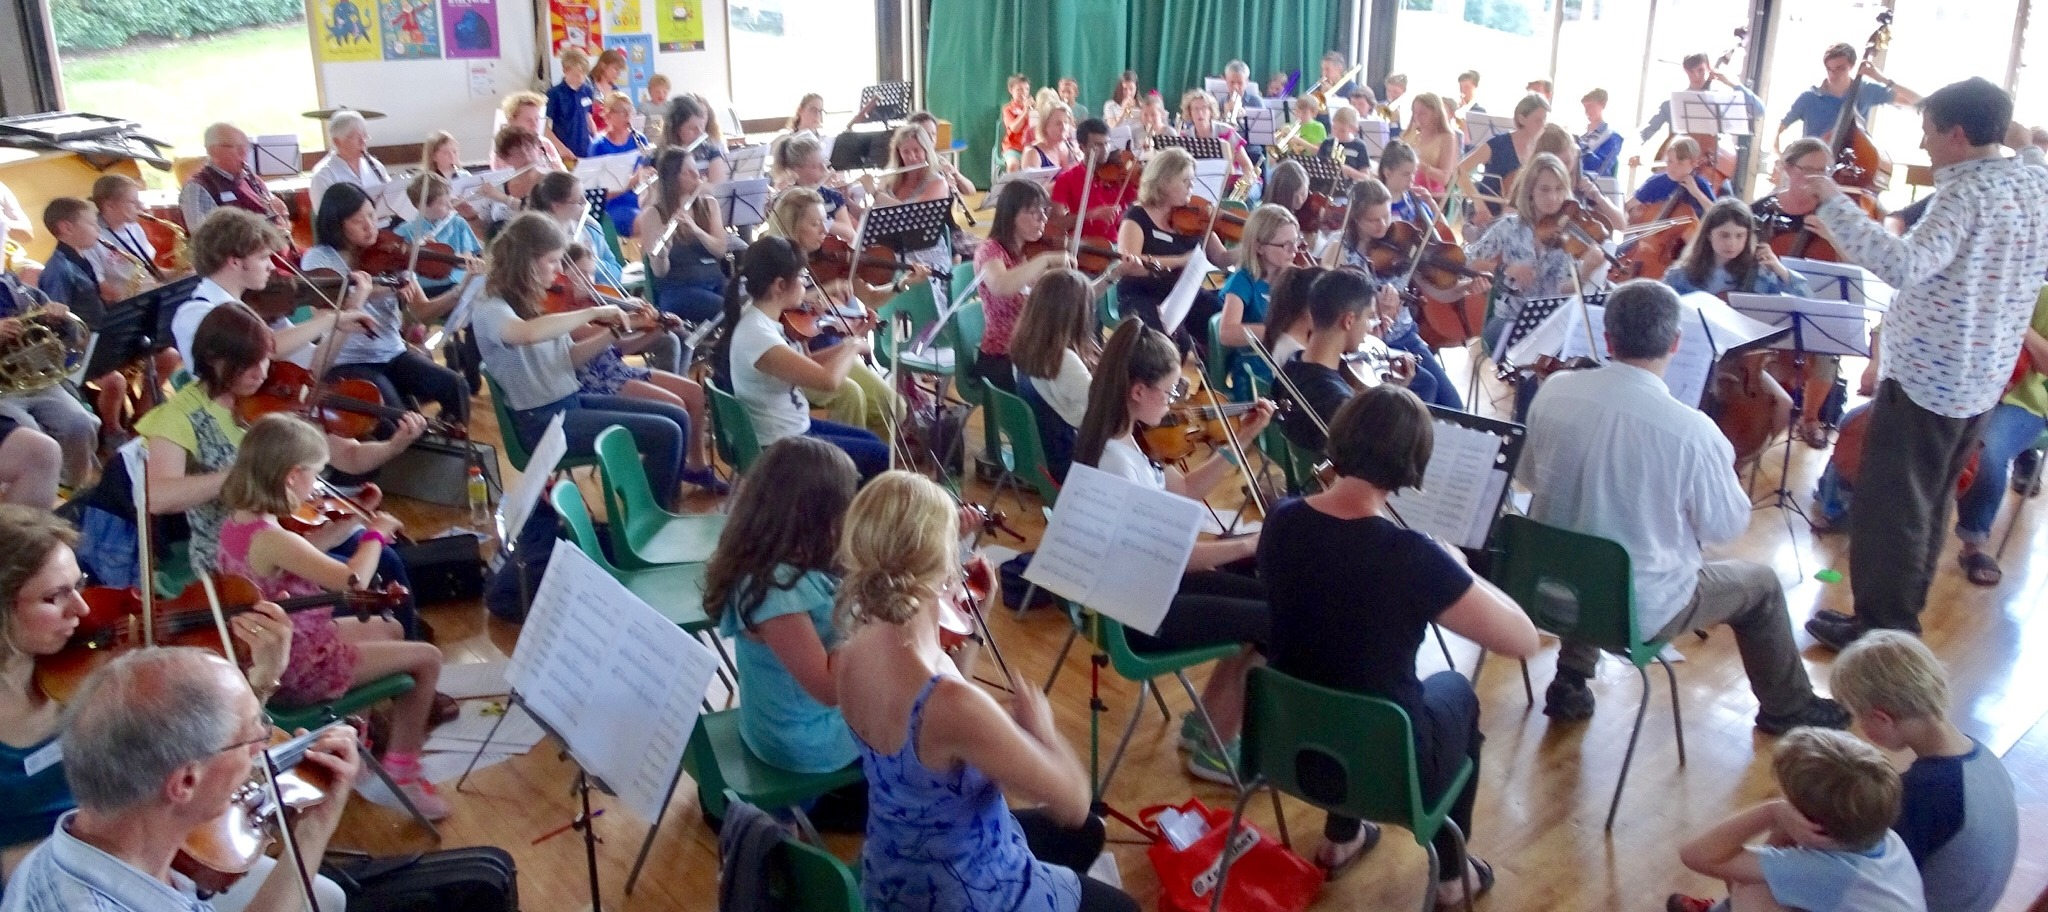 Chorleywood Orchestra invite beginners, returners-to-playing and professionals to join their orchestra for the afternoon